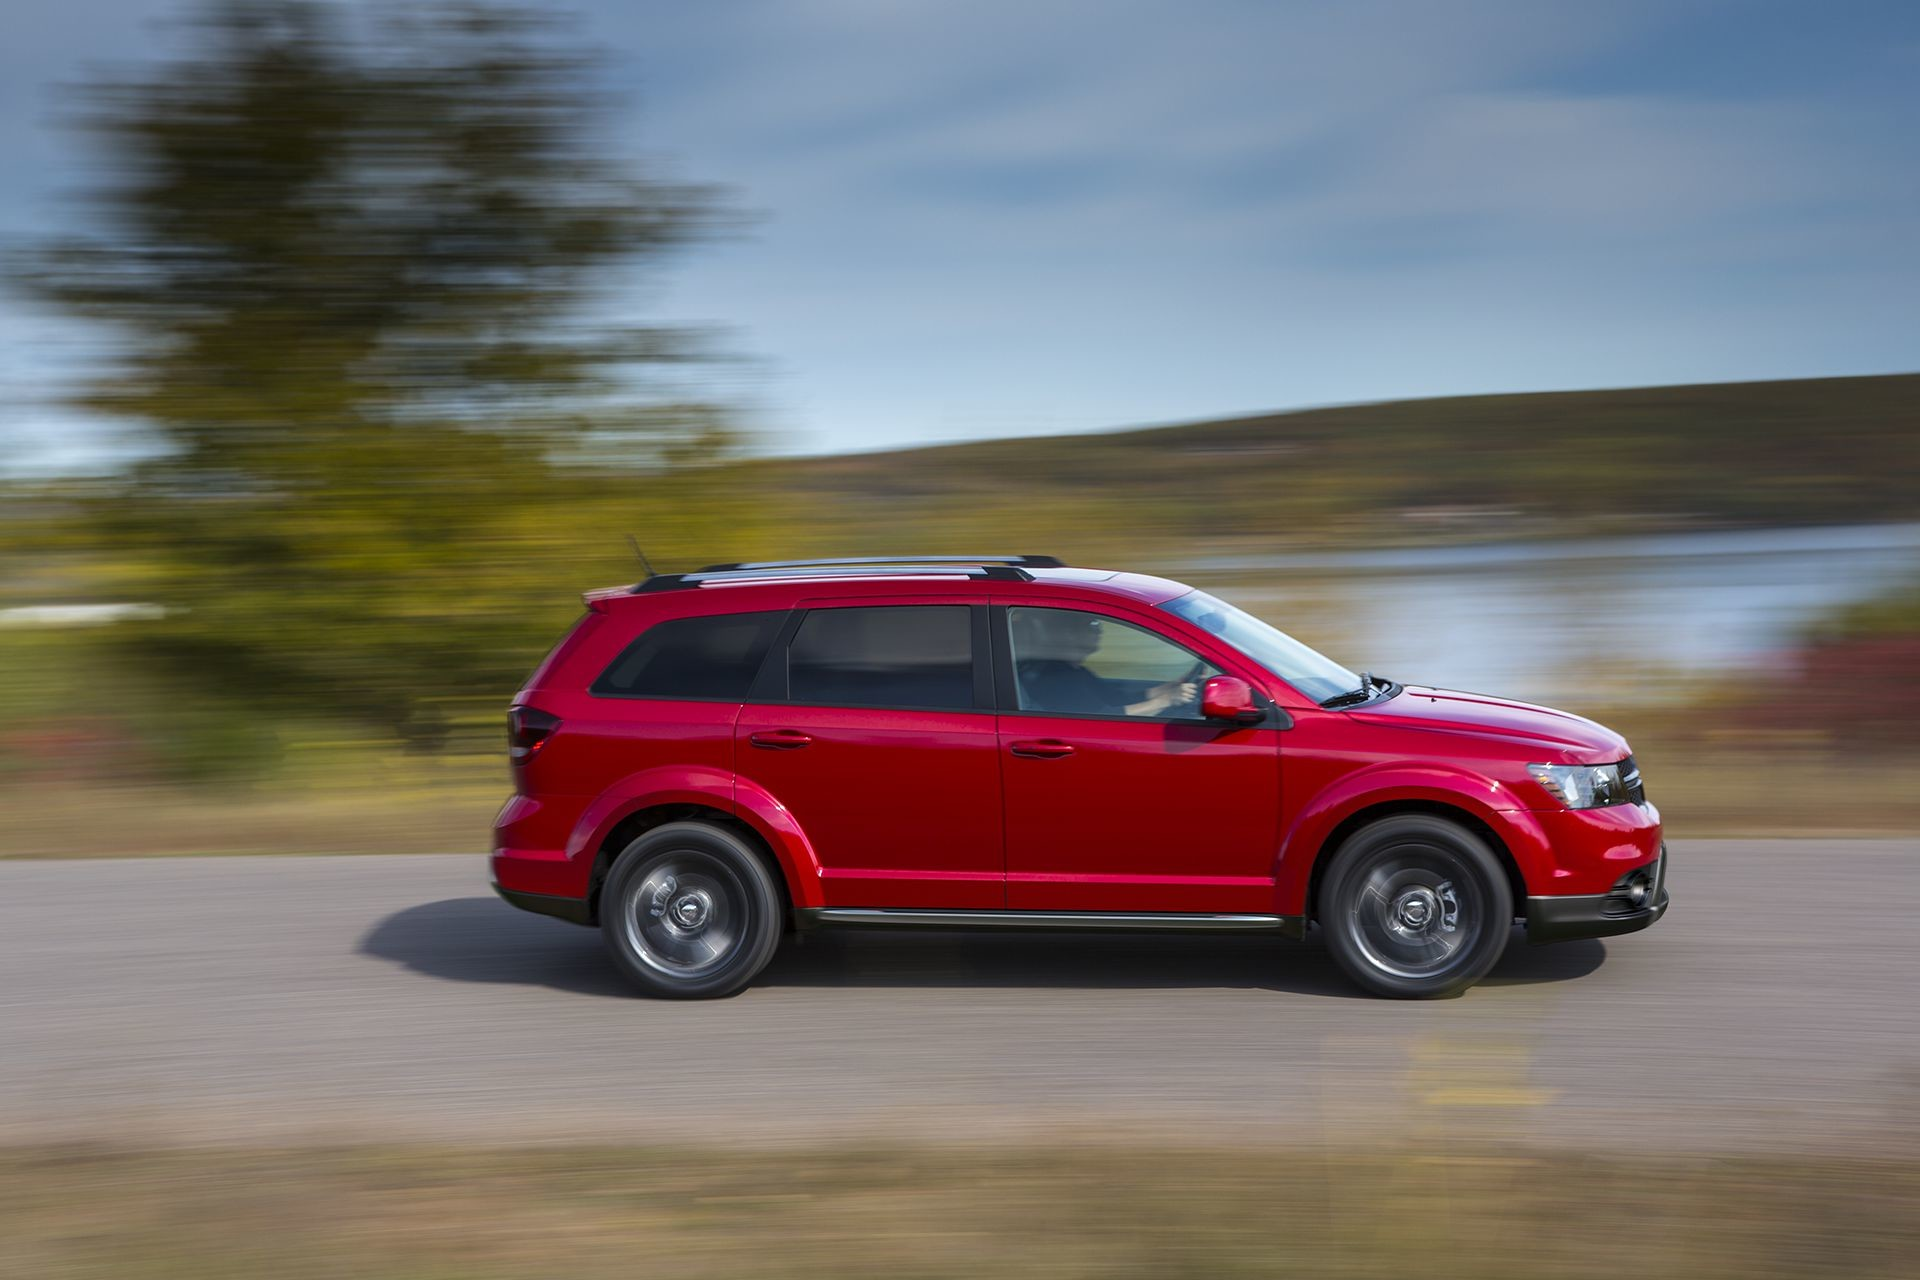 2018 Dodge Journey fuel efficient crossover